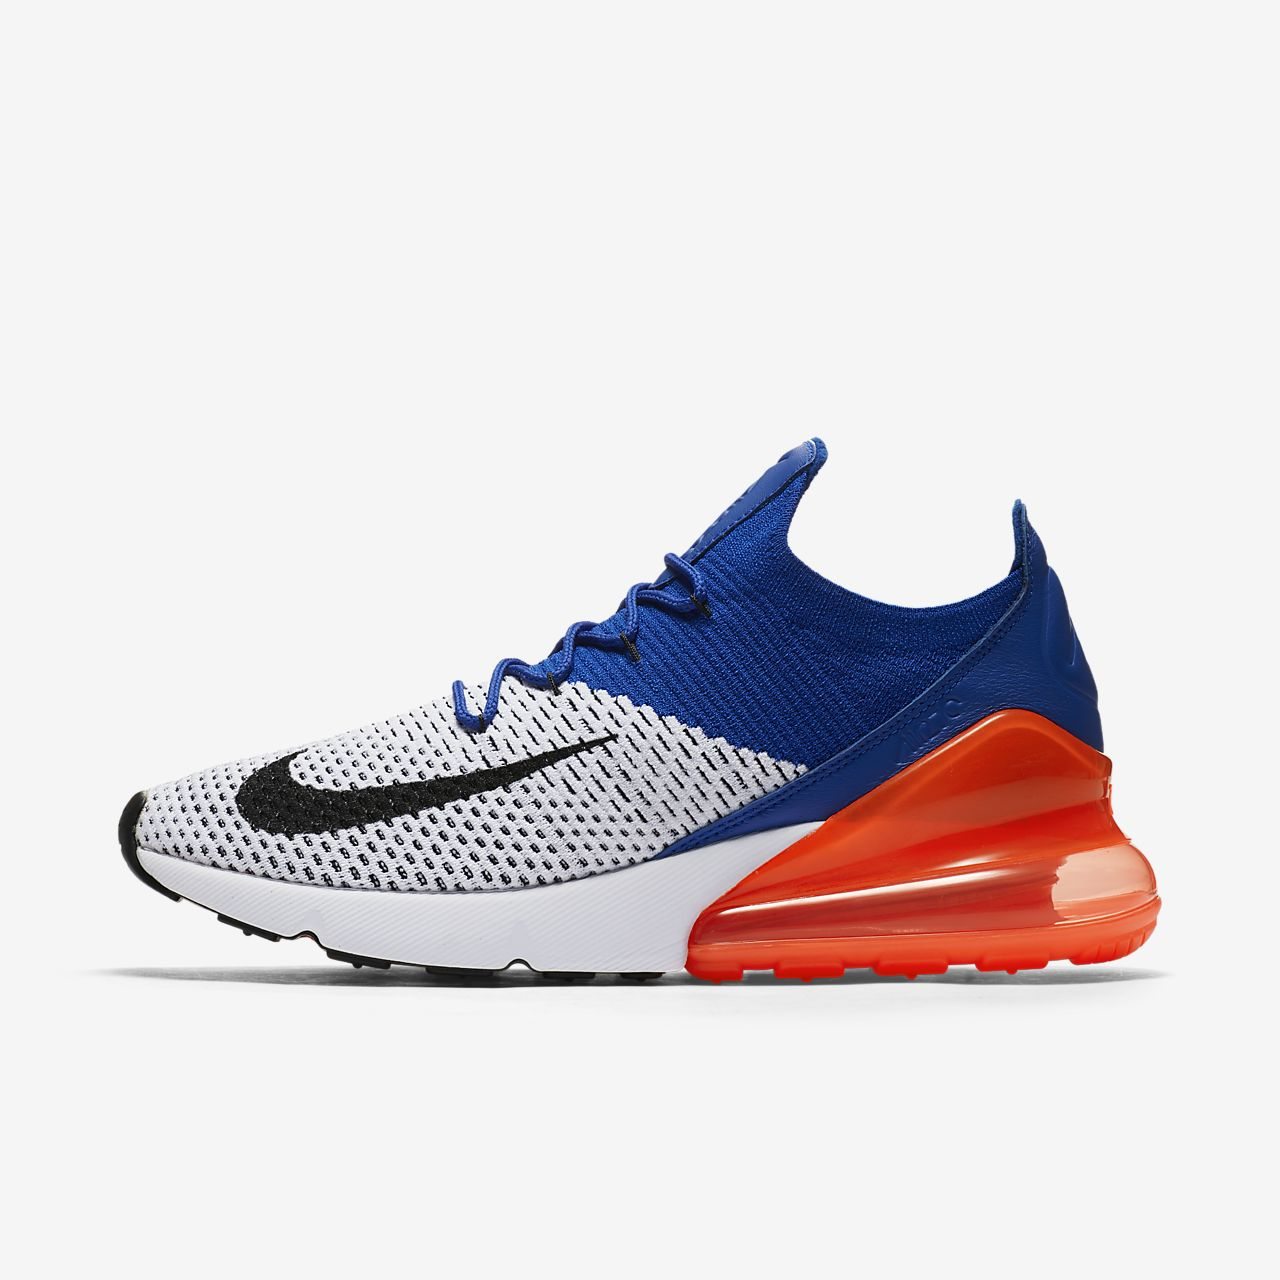 Acquista nike air max 270 flyknit blu OFF43% sconti